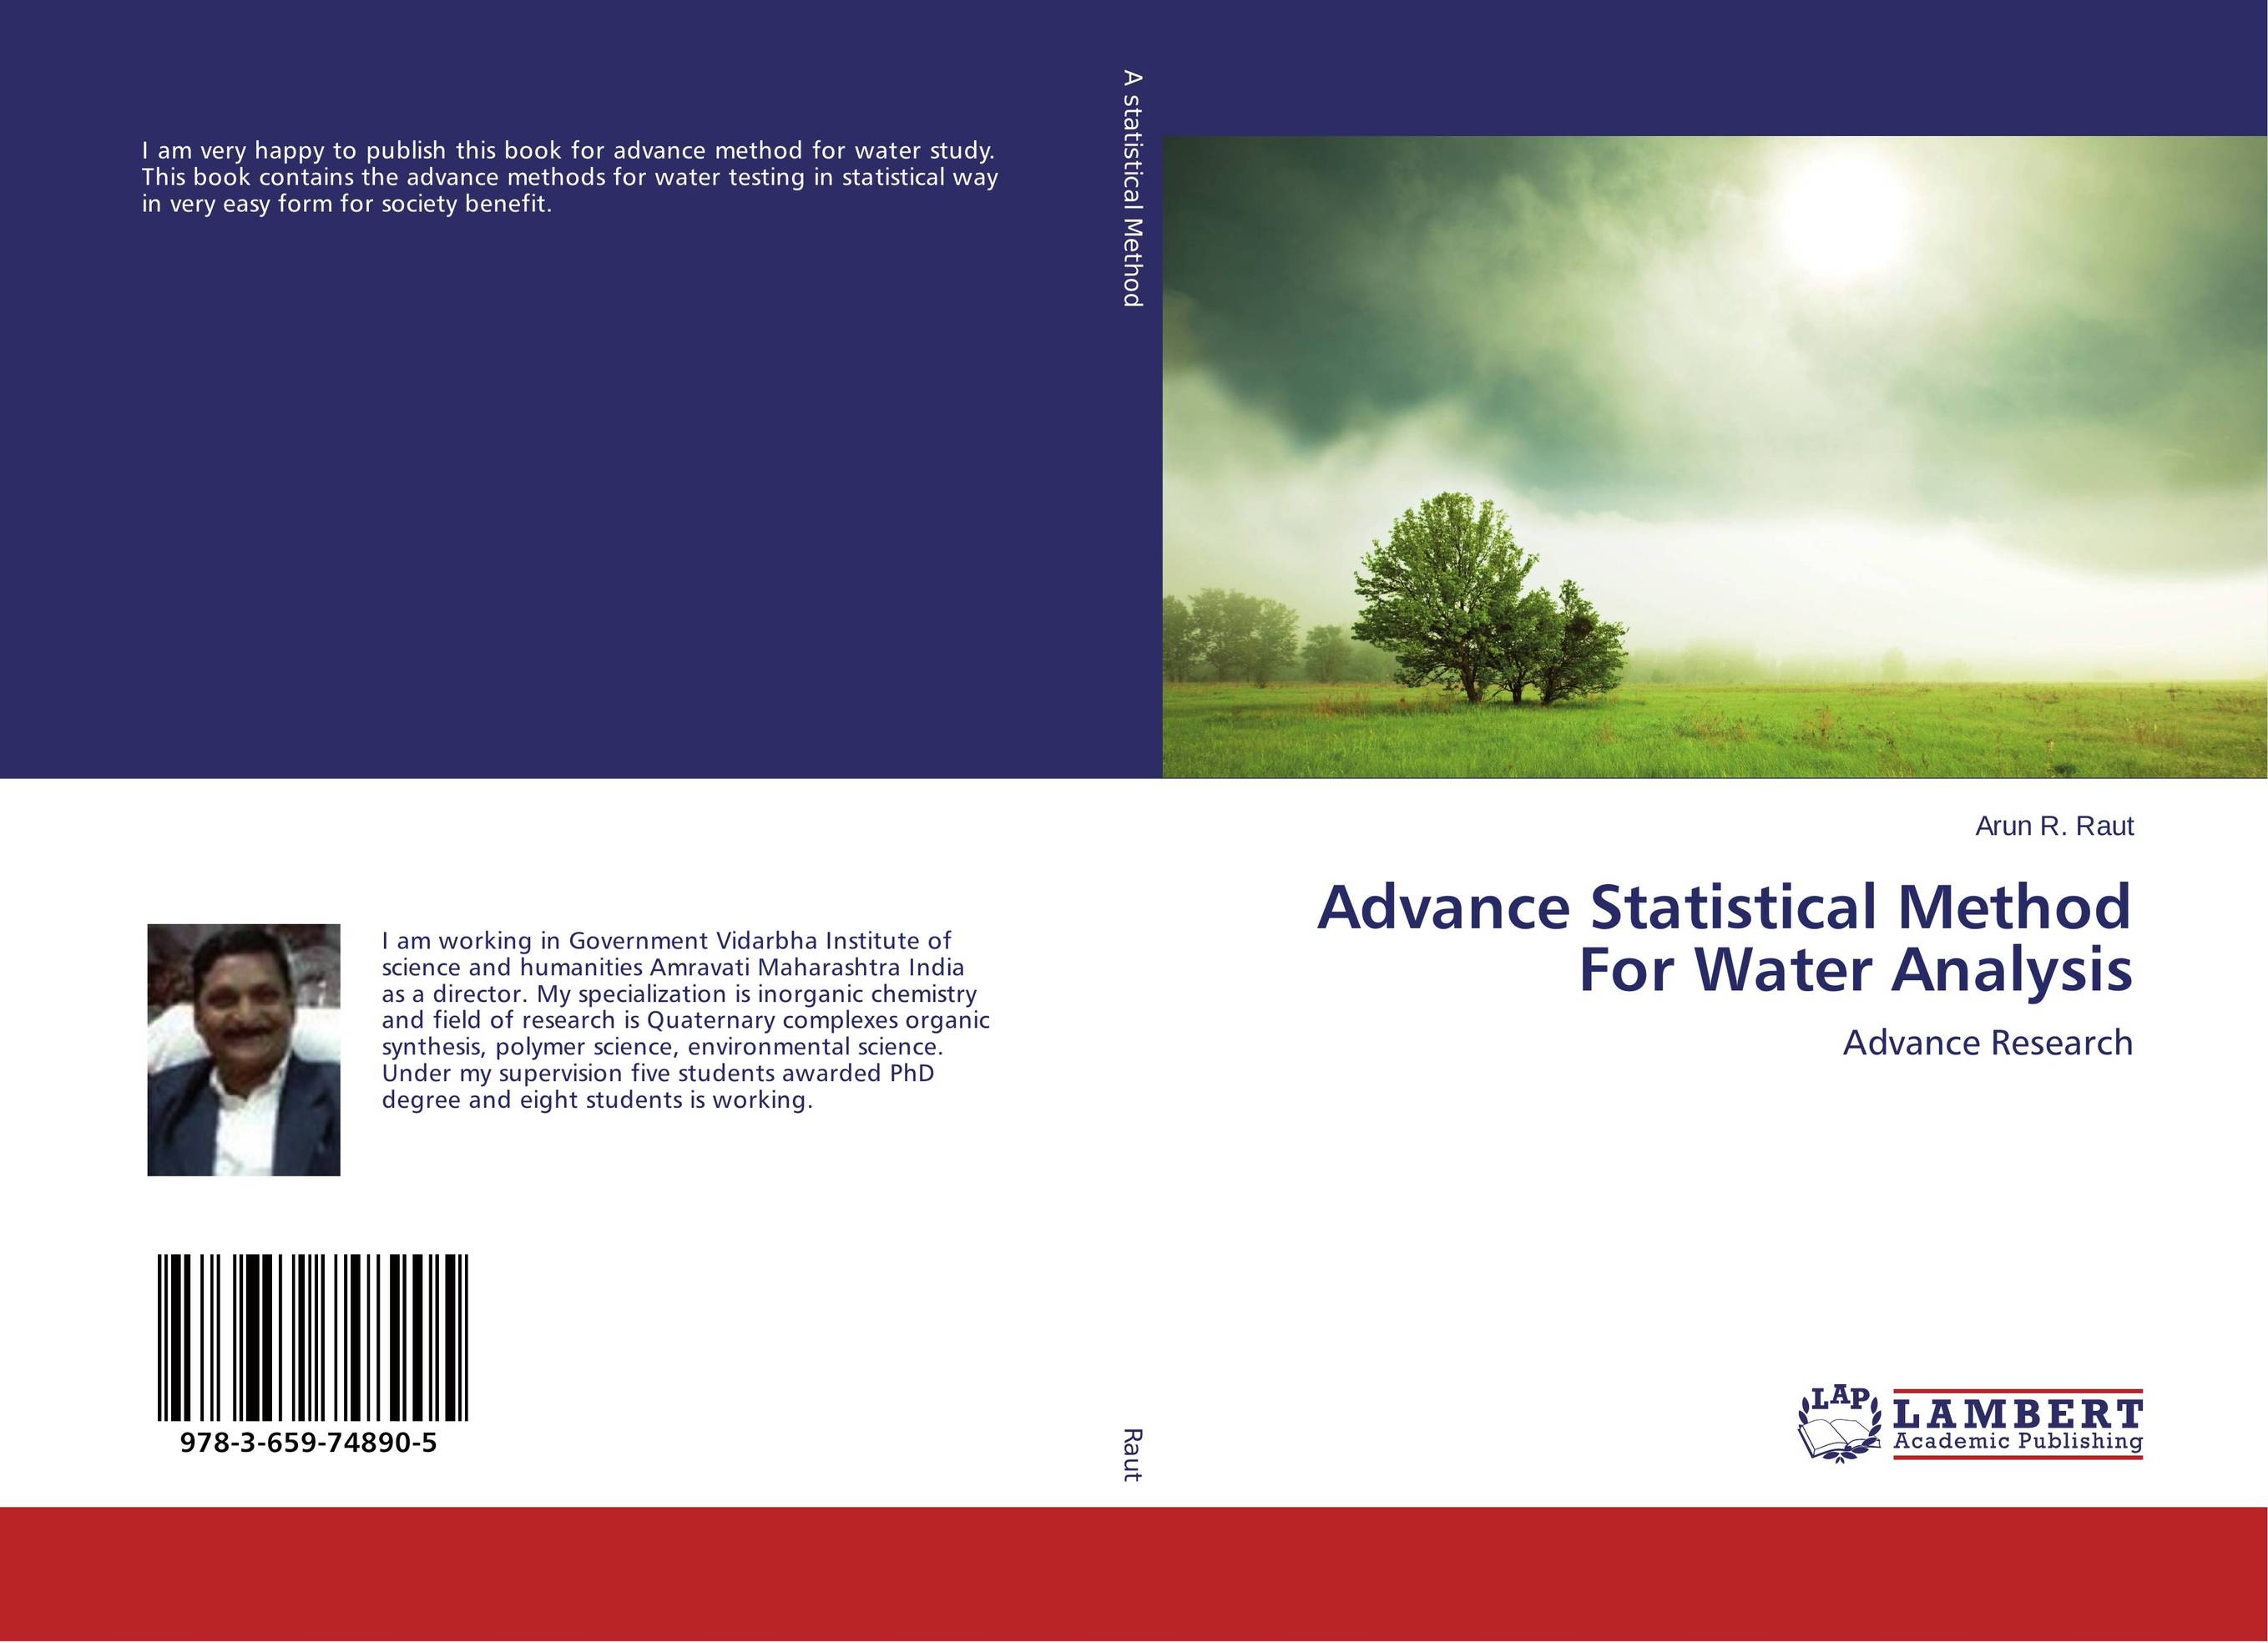 Advance Statistical Method For Water Analysis